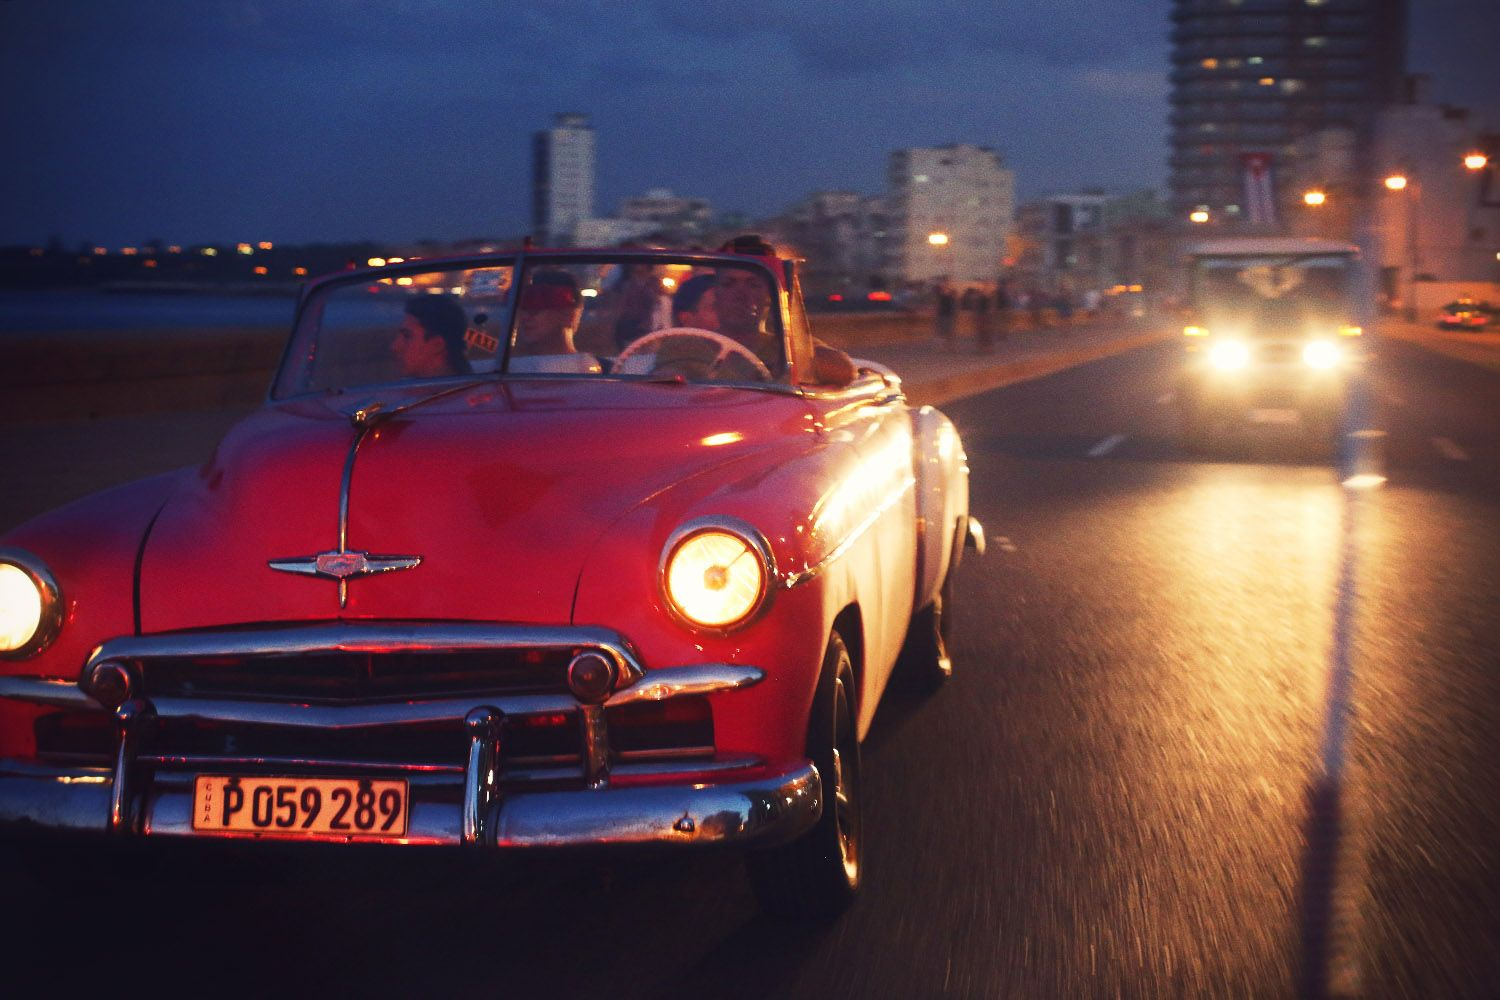 Traveling to Cuba will be one of the most frustrating and challenging, yet exciting and rewarding, travel experiences of your life.